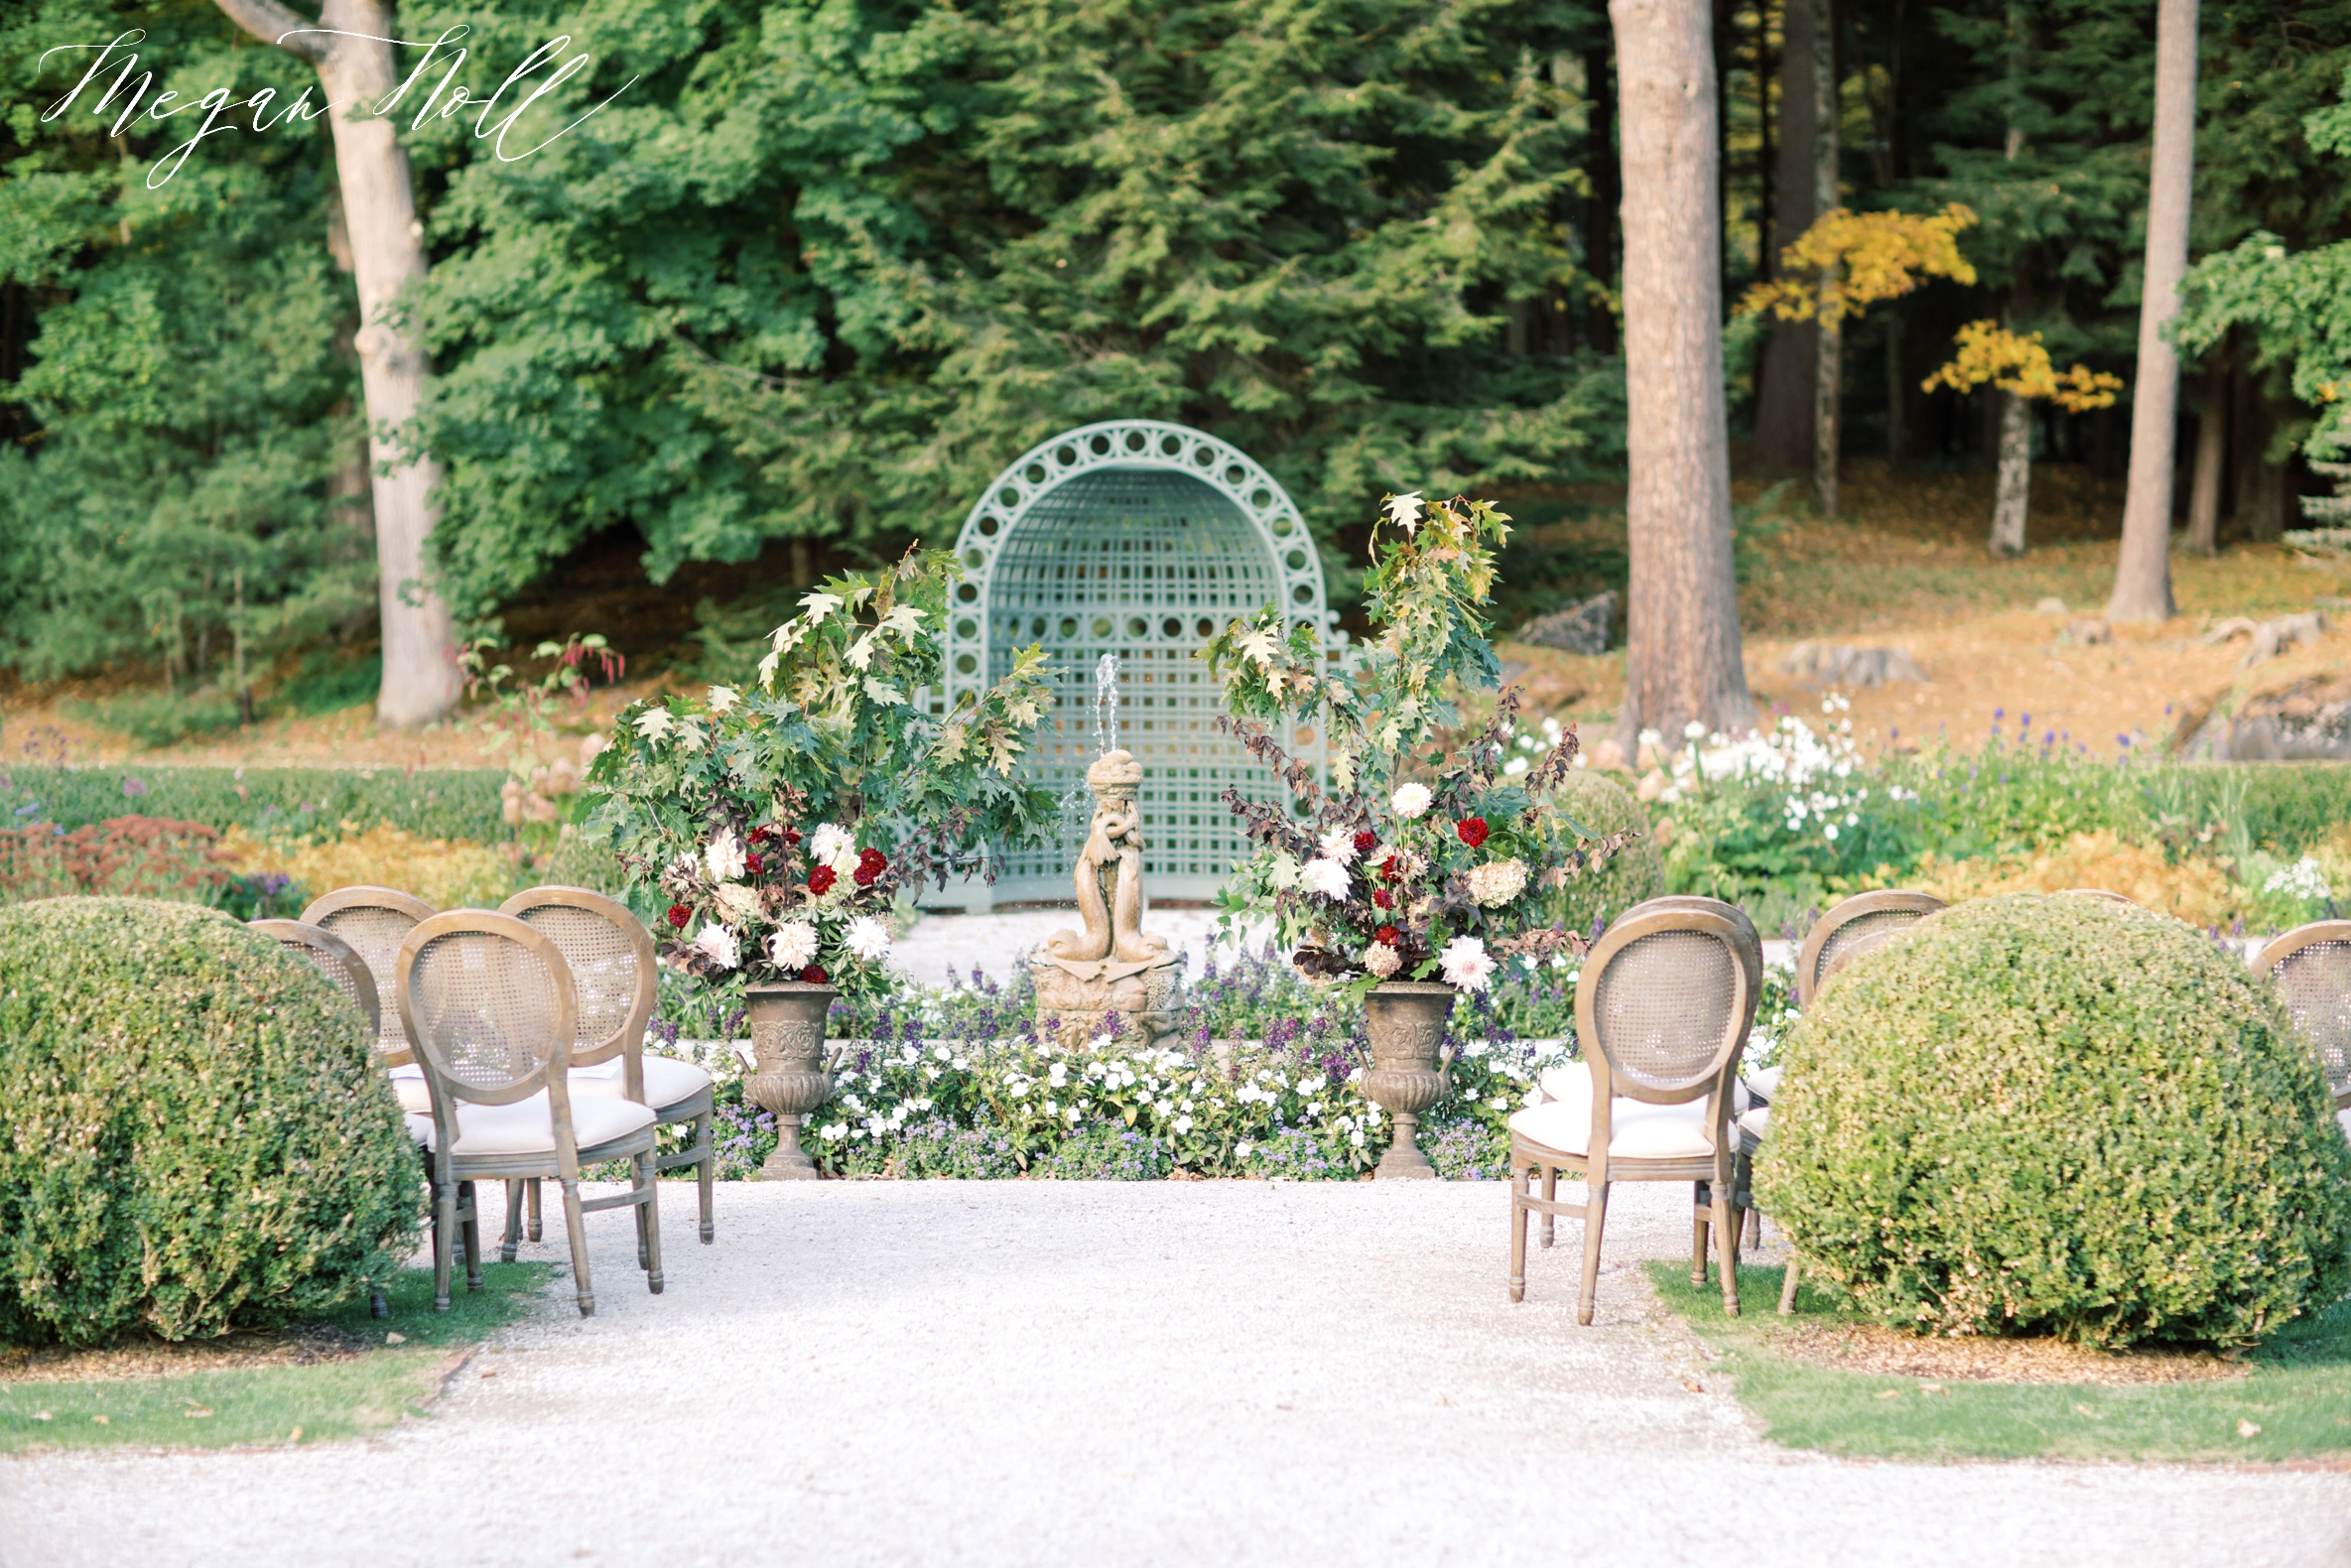 Outdoor wedding ceremony space near Albany